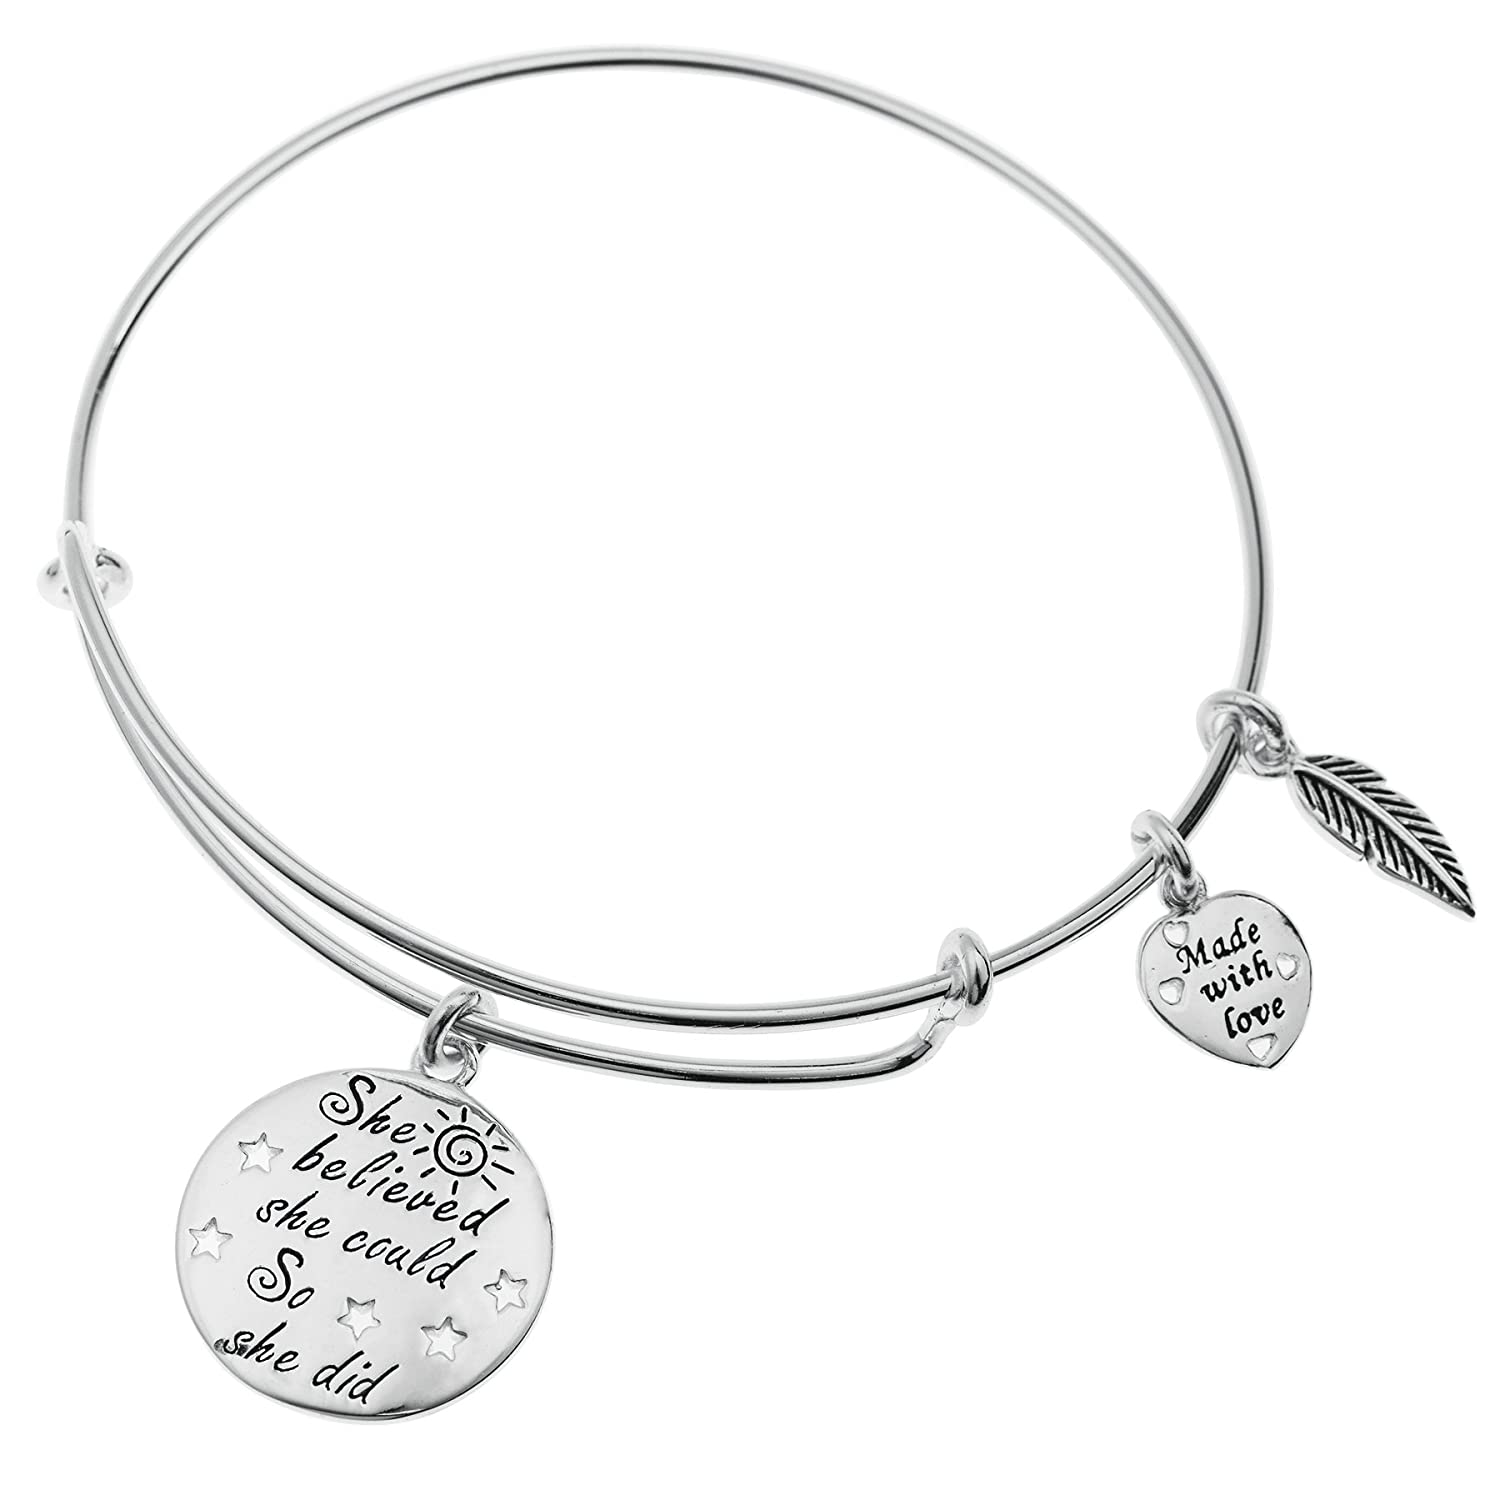 925 Sterling Silver She Believed She Could So She Did Heart Charm Adjustable Wire Bangle Dreambell - Alex Ani Style NBL0028X1